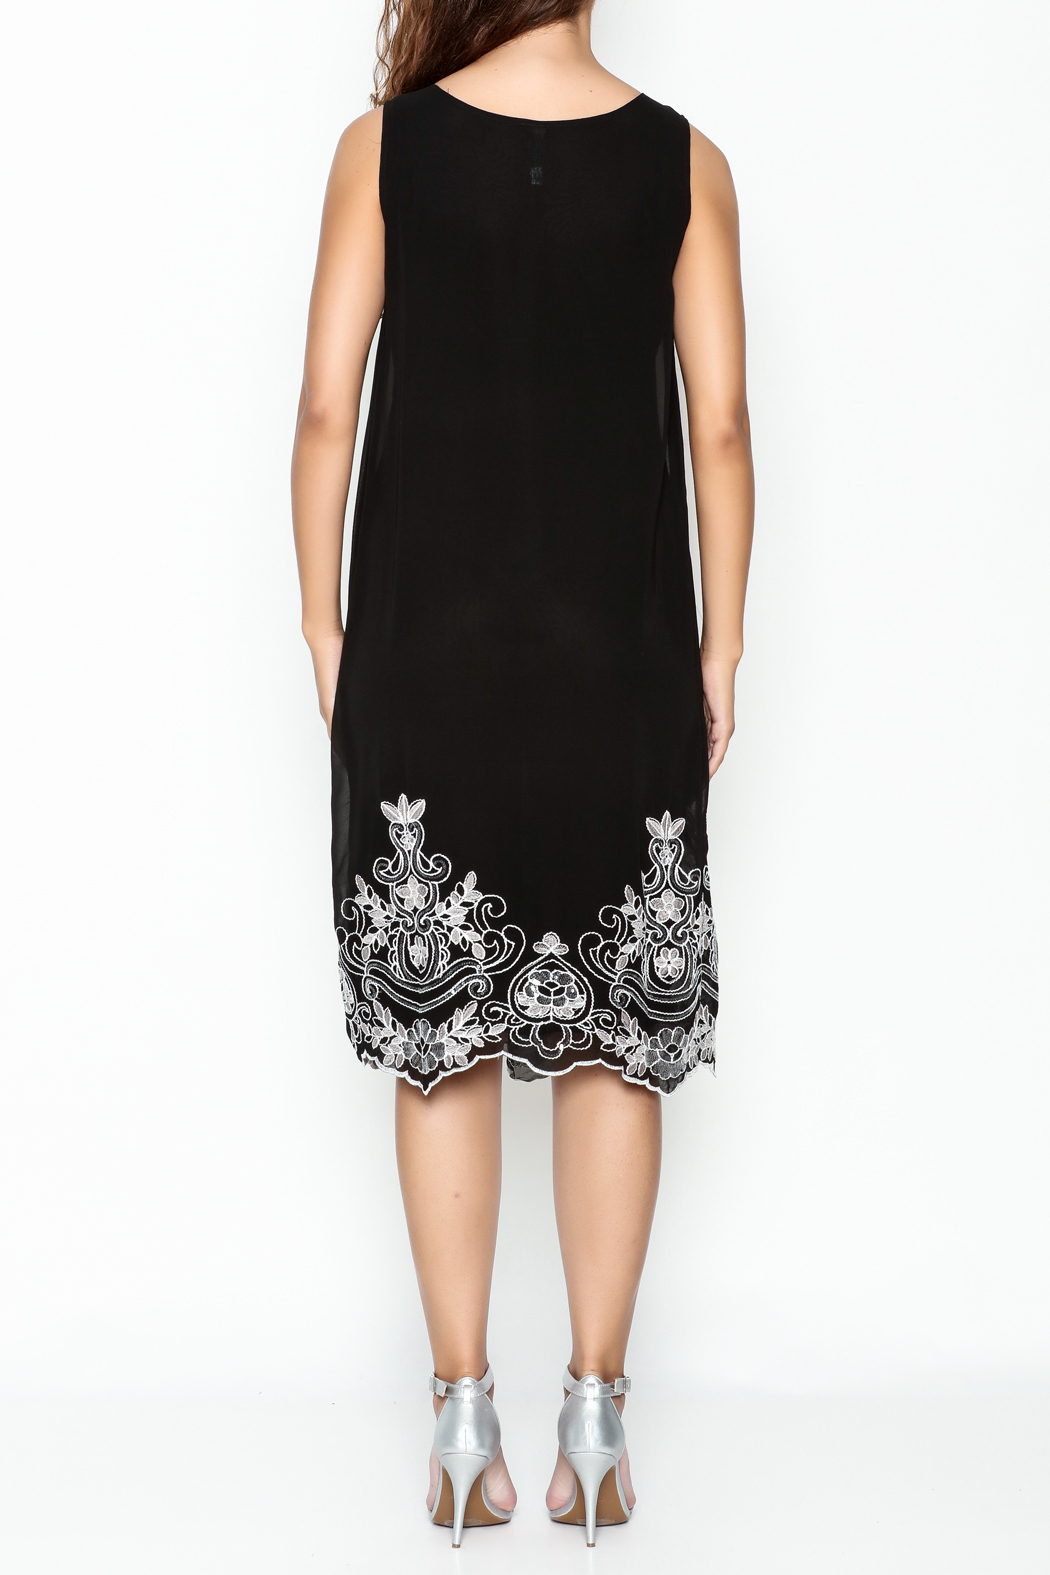 Monoreno Black Sequin Floral Dress - Back Cropped Image